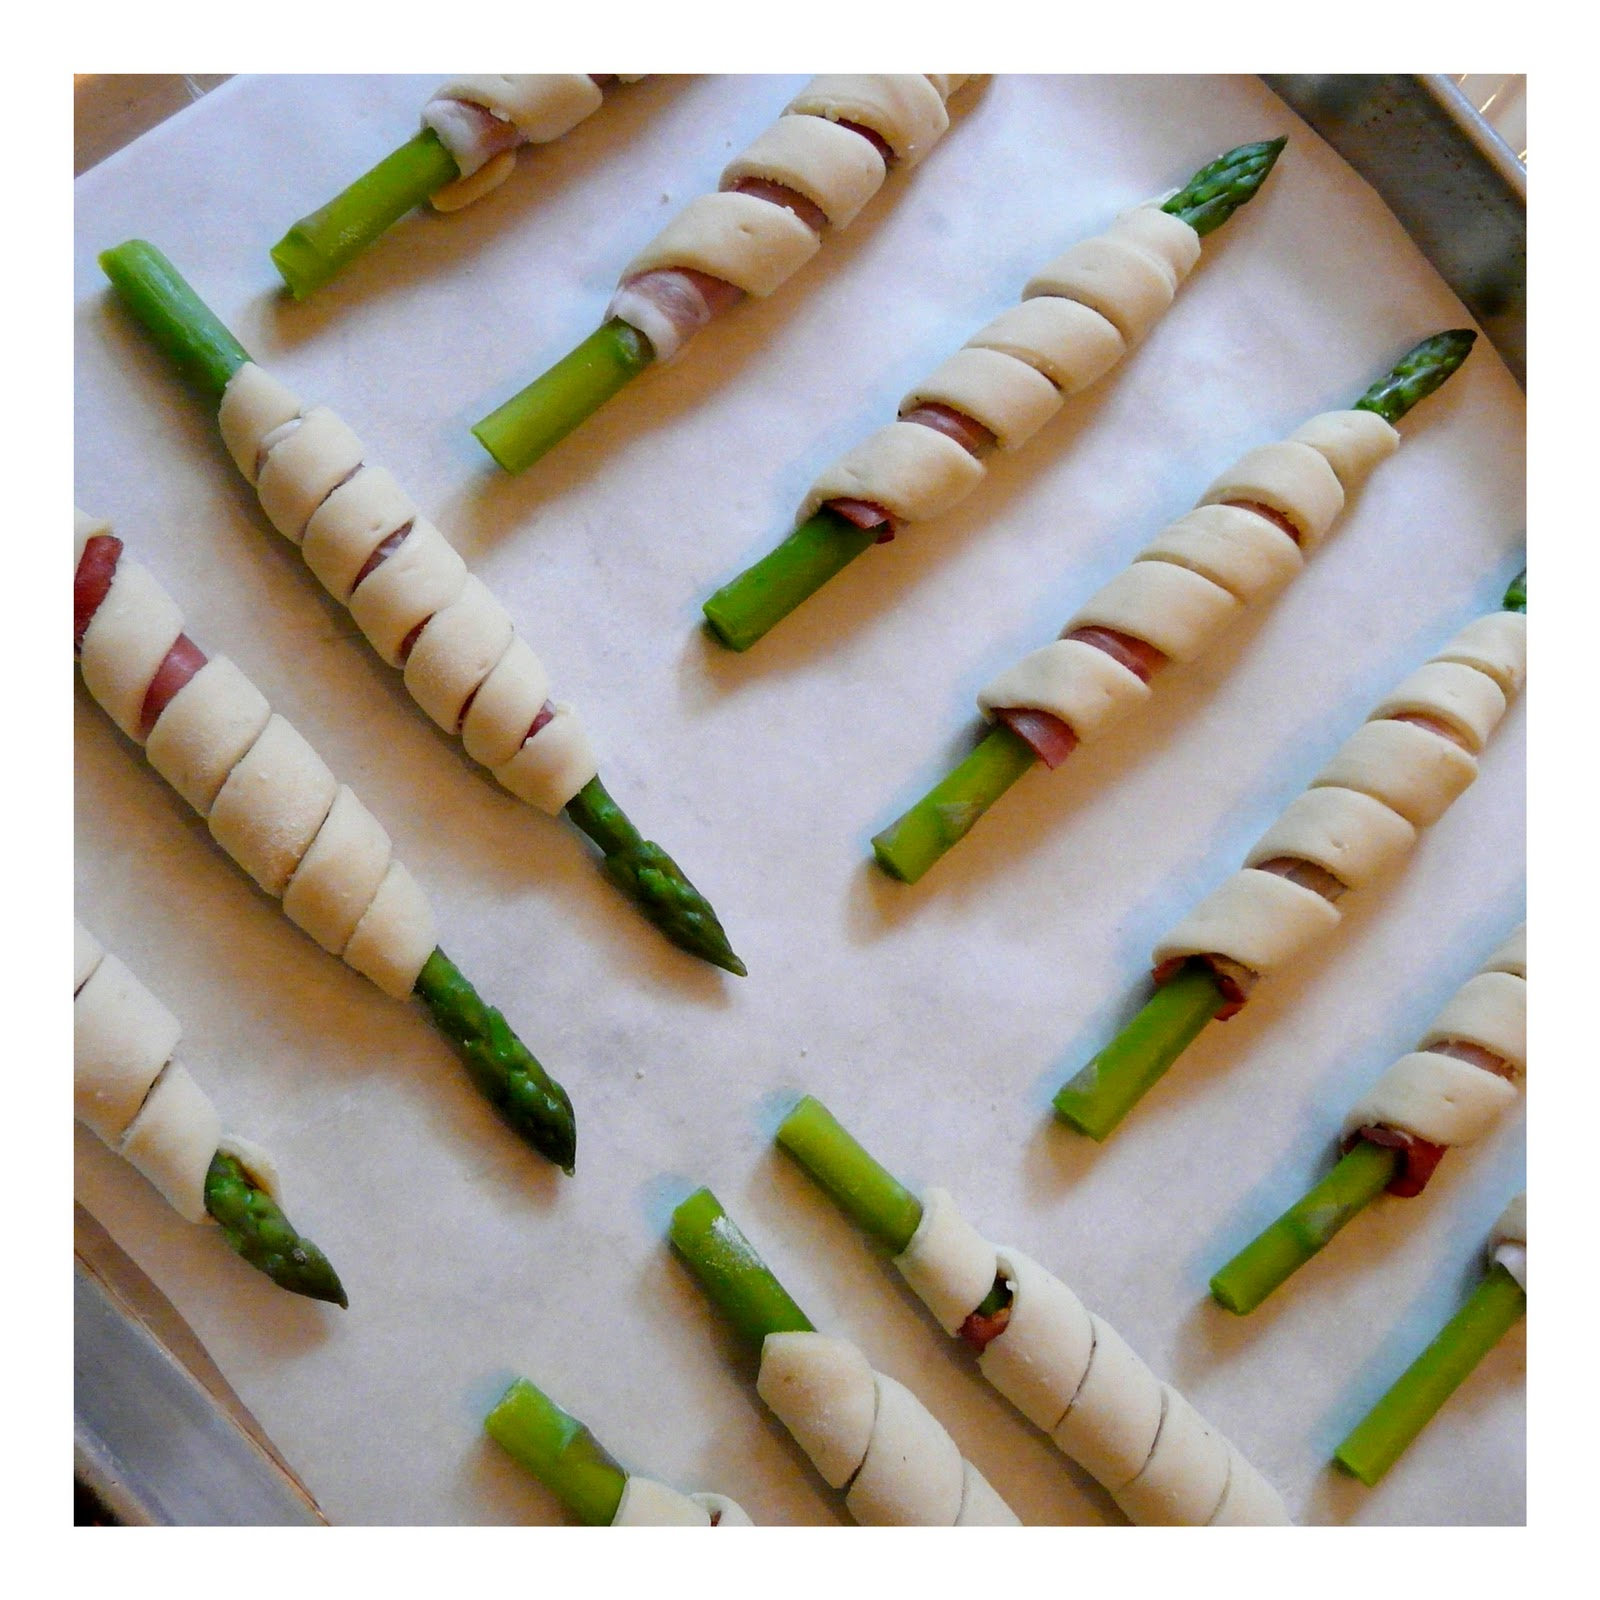 ... APPETIZER RECIPE -- PROSCIUTTO WRAPPED ASPARAGUS SPEARS IN PUFF PASTRY